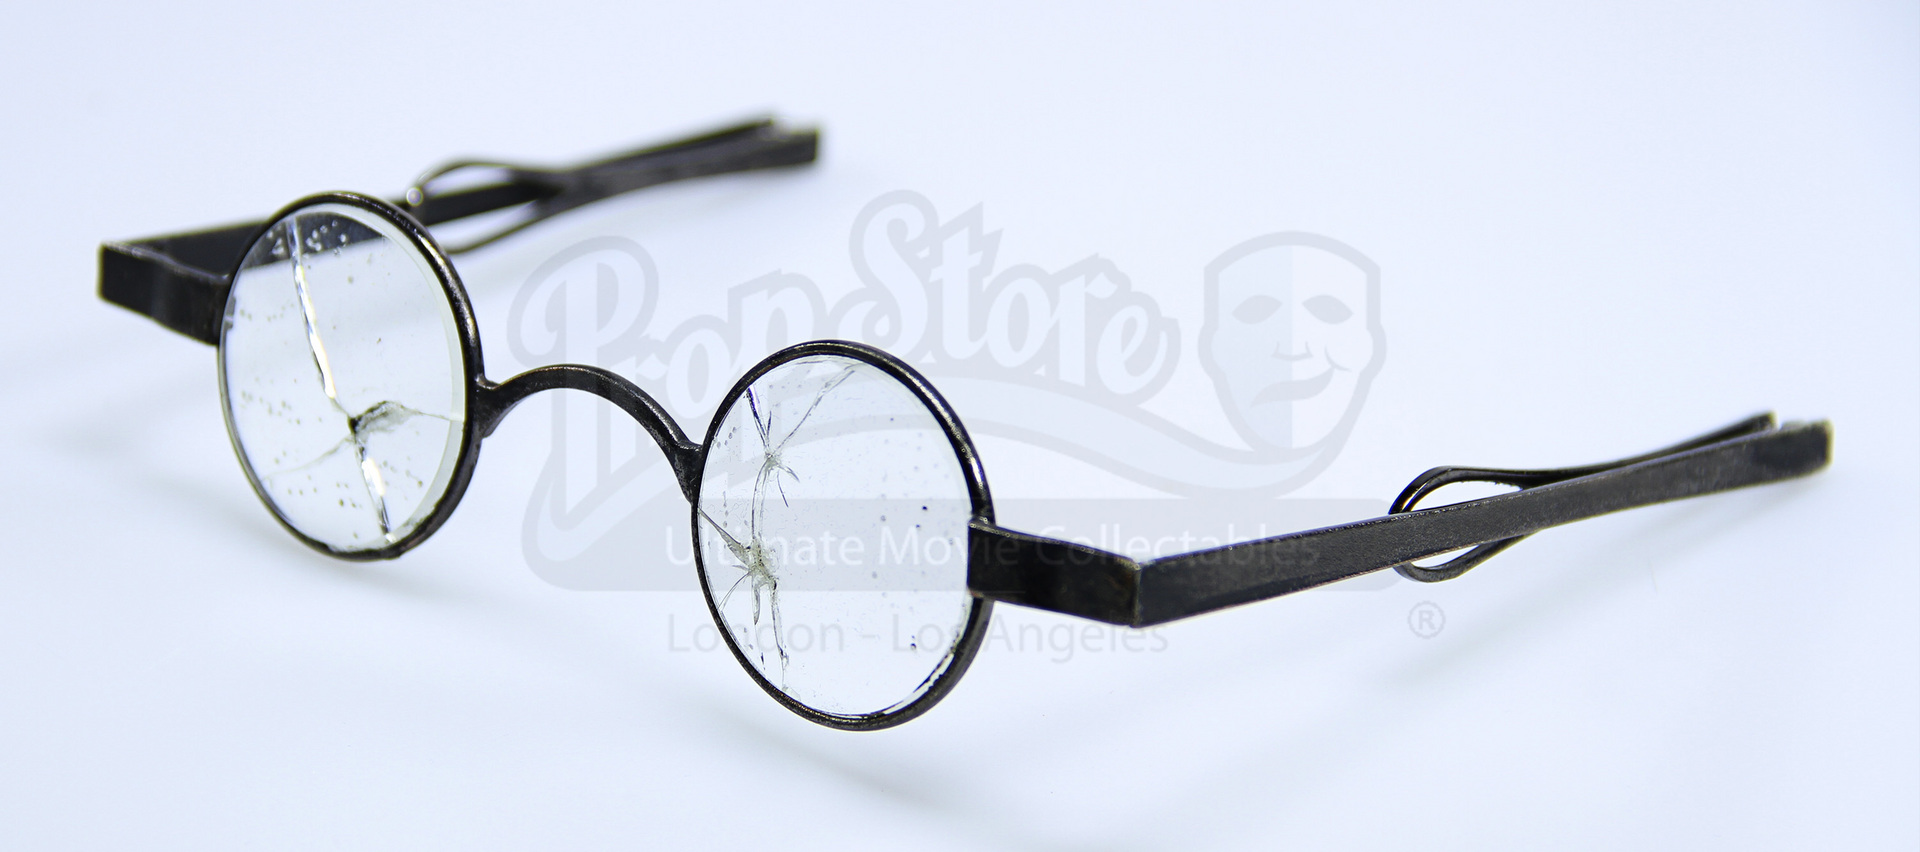 Captain Witwickys W Morgan Sheppard Glasses Prop